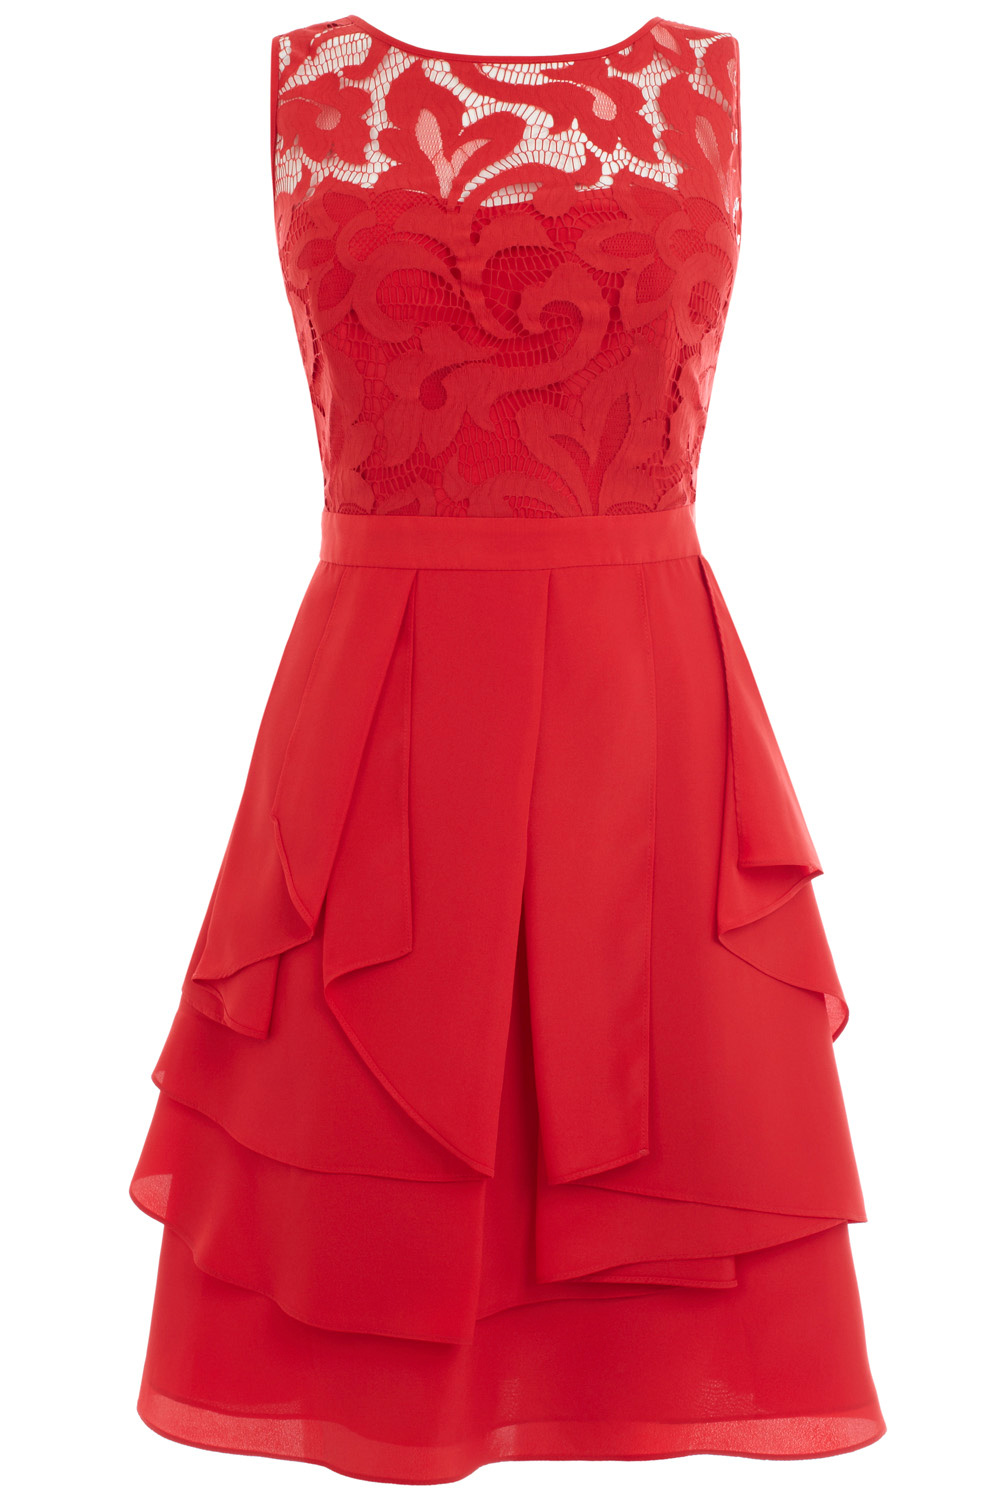 Coast daymee dress in red reds lyst for Dresses to wear to a wedding for teens